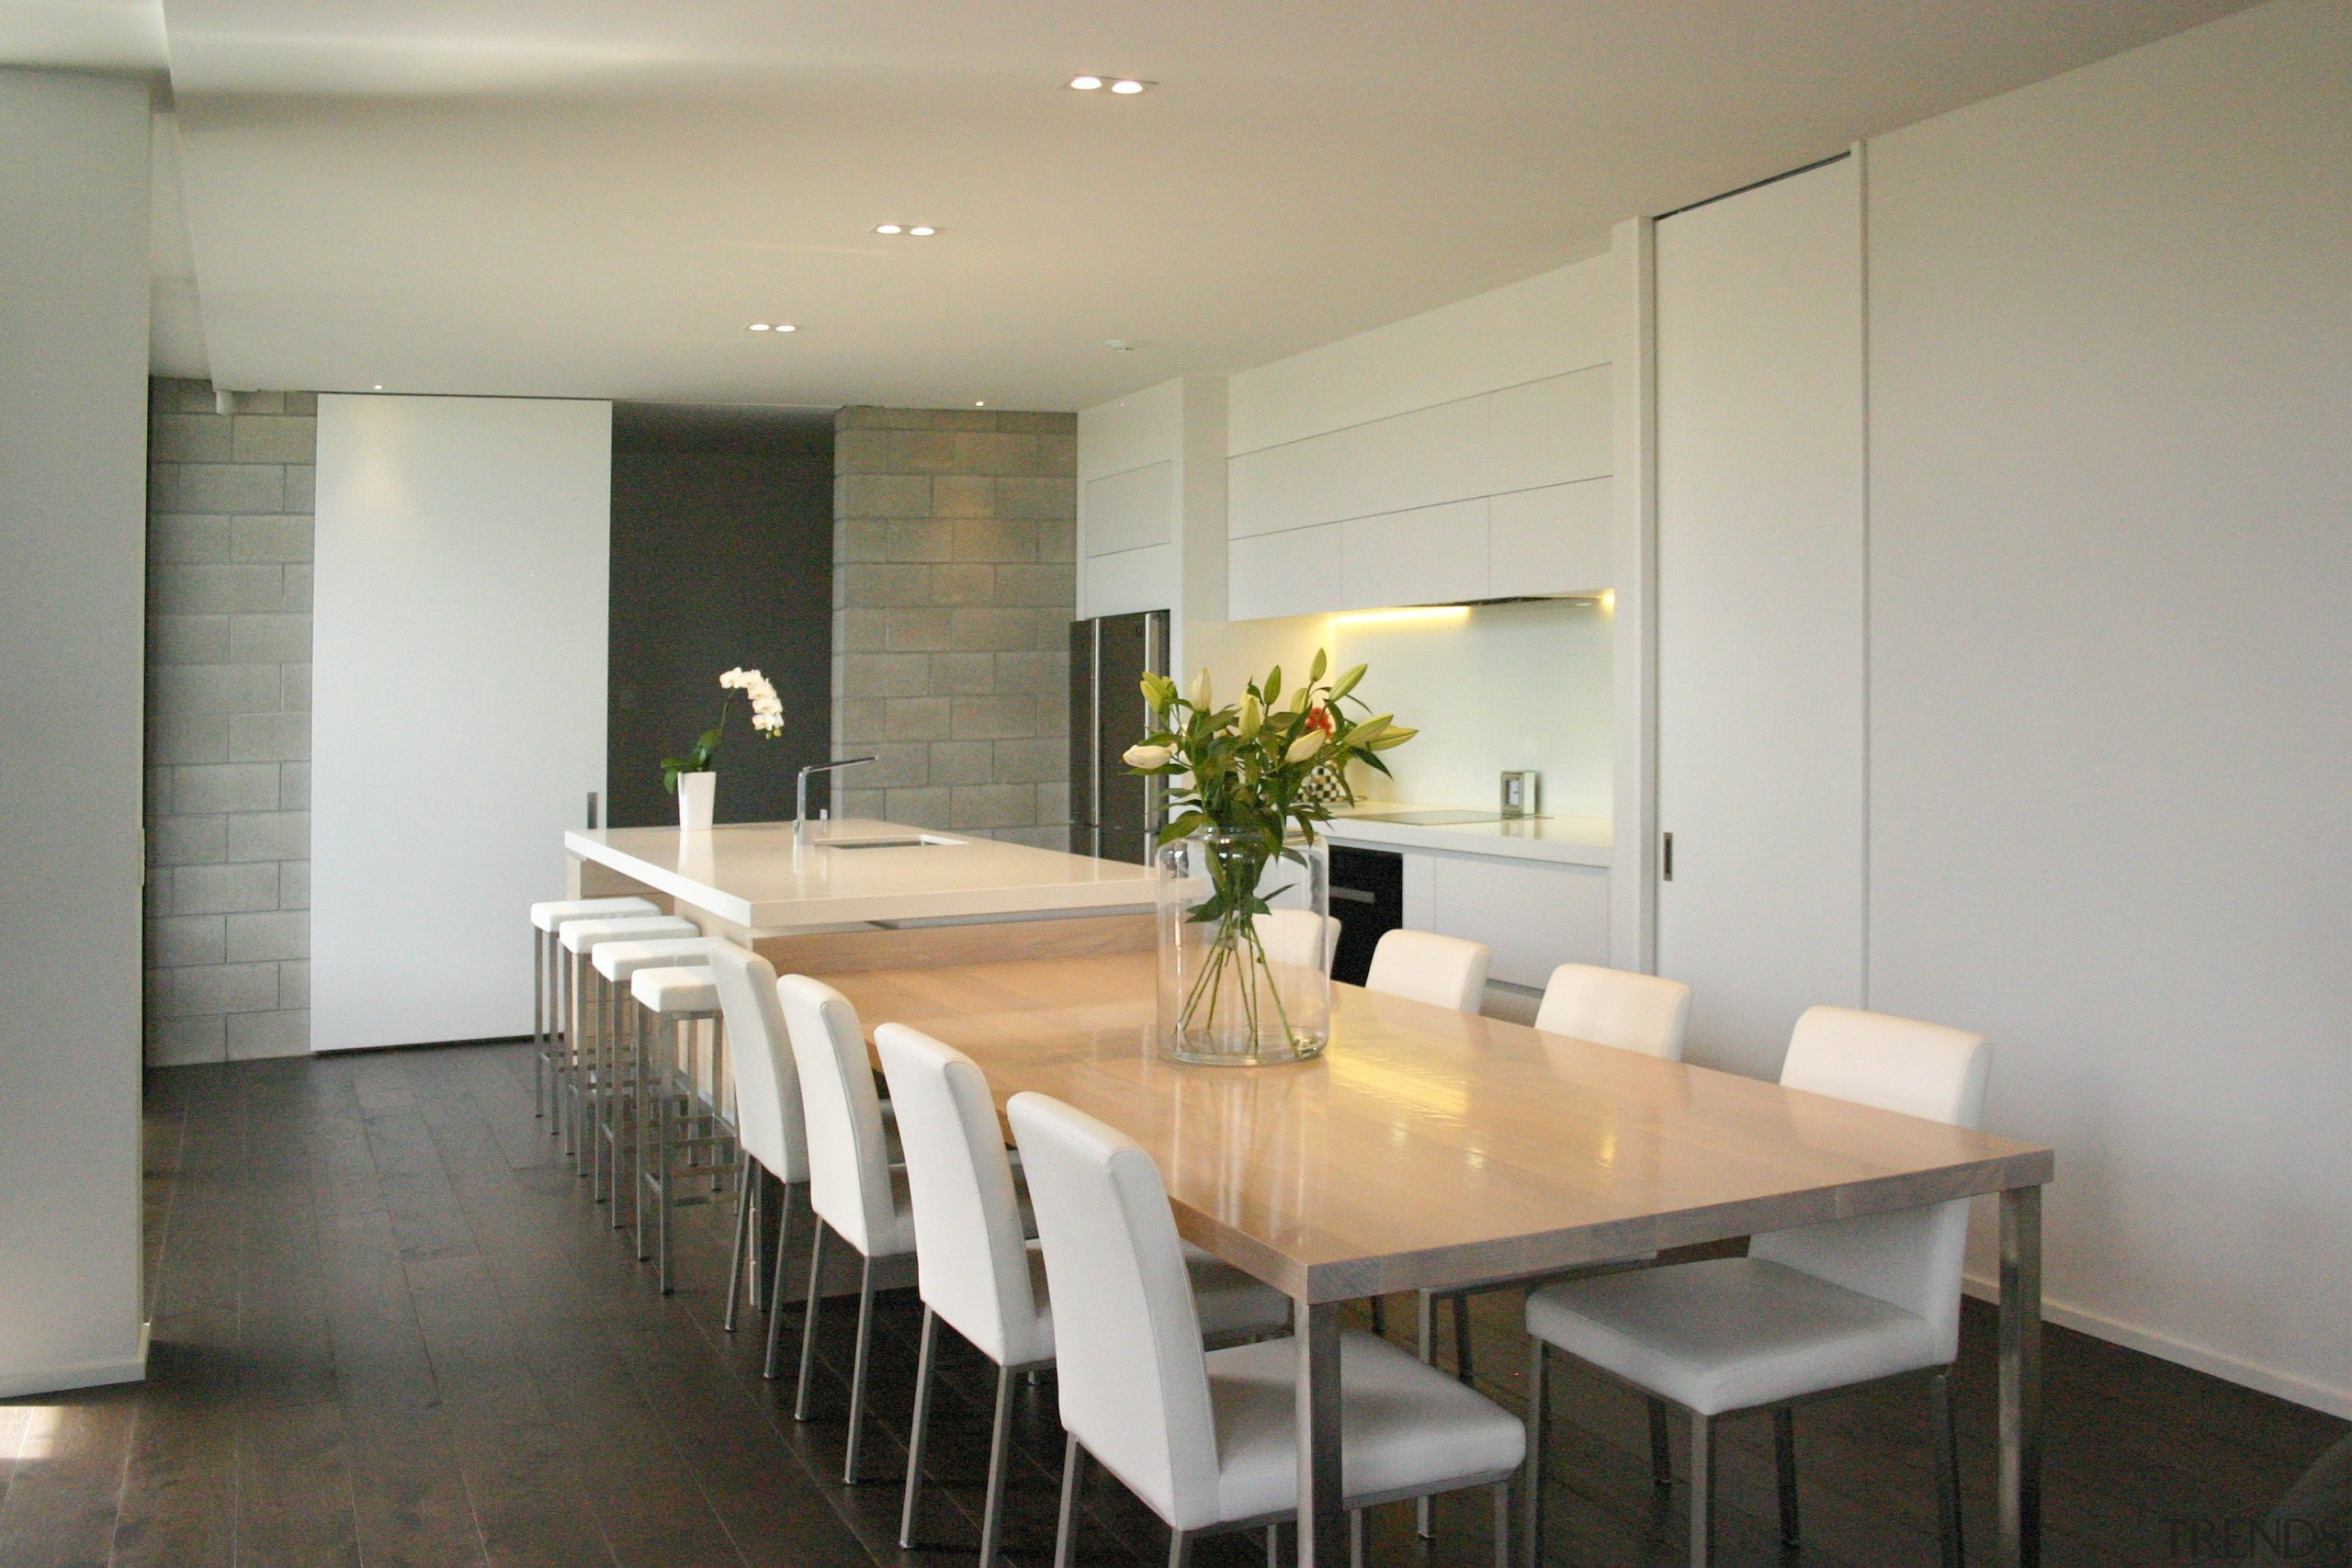 TIDA New Zealand Kitchens – proudly brought to dining room, floor, flooring, interior design, property, real estate, room, table, gray